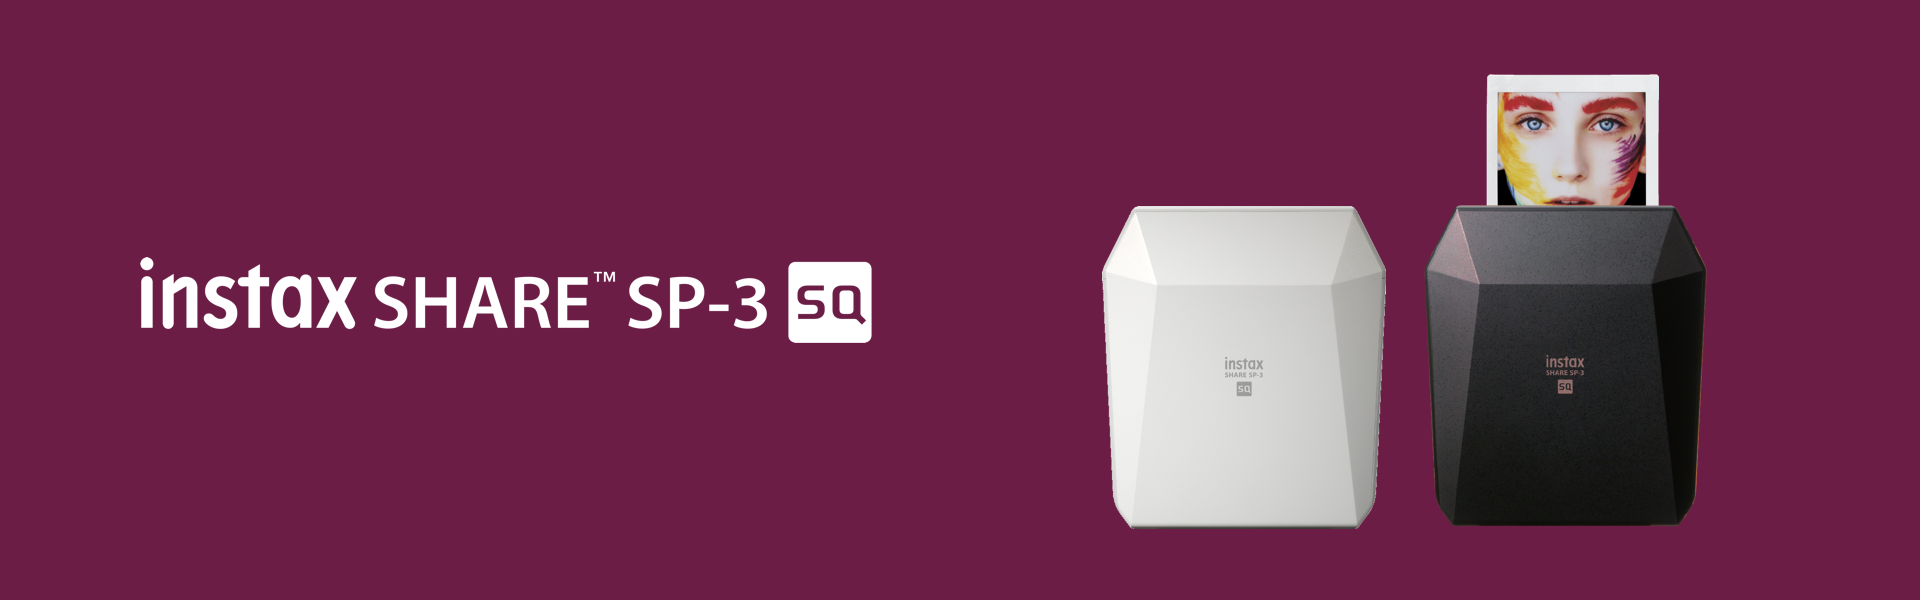 INSTAX SHARE™ SP-3 printers with white and black color options